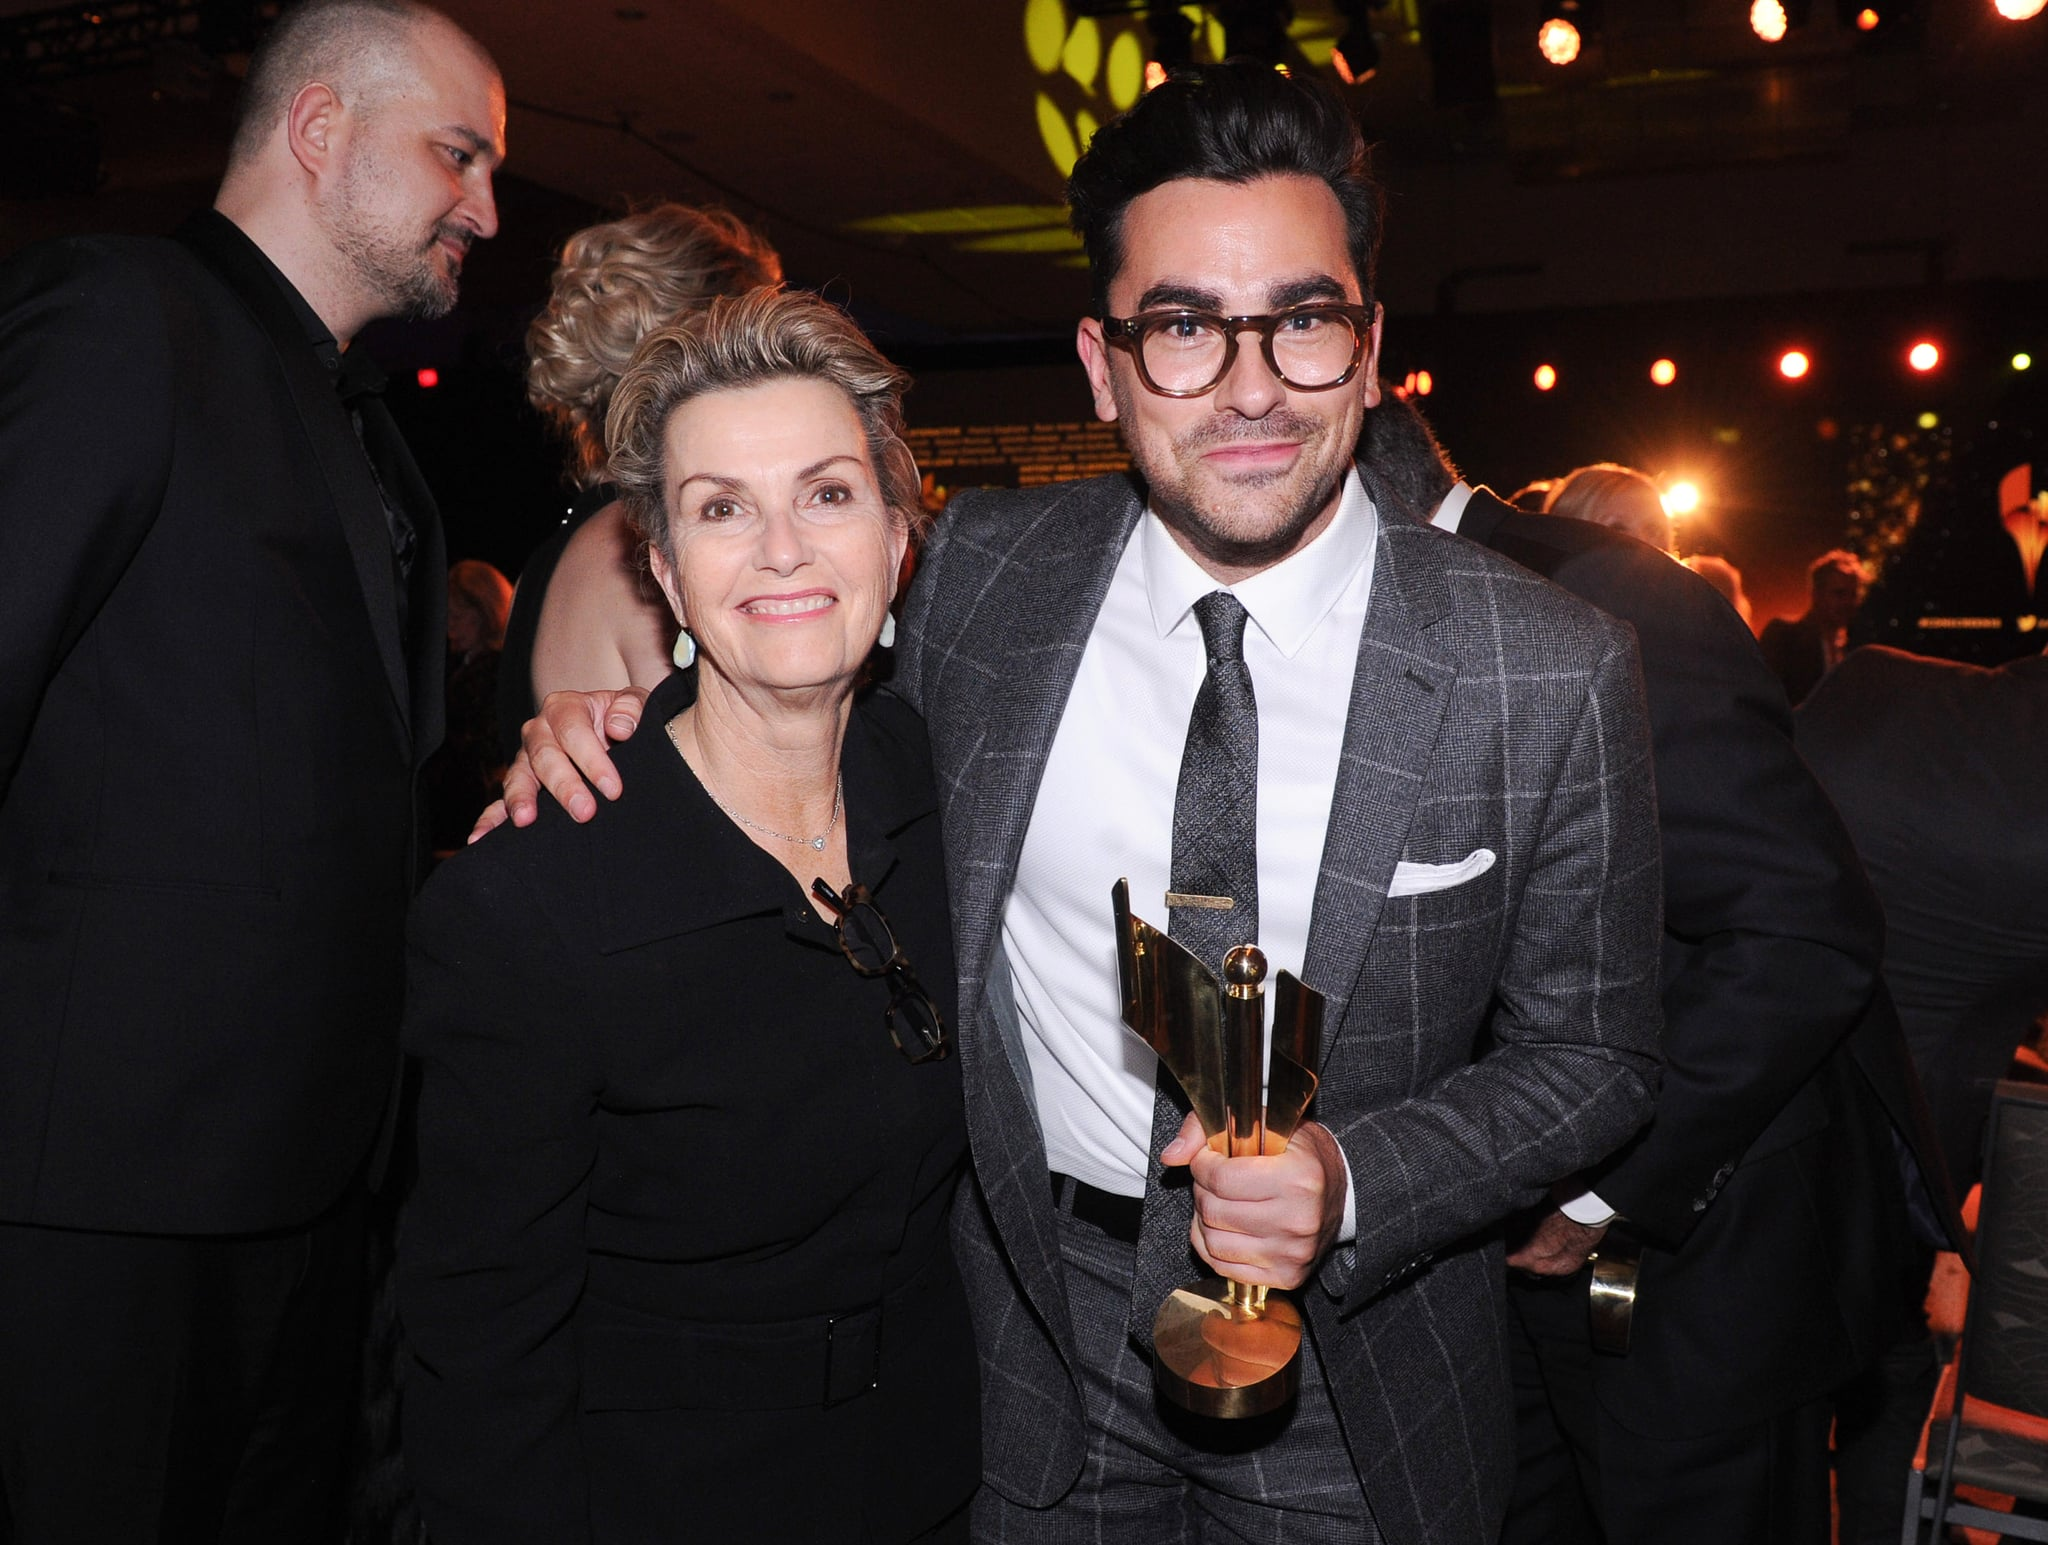 TORONTO, ON - MARCH 09: Deborah Divine Levy and actor Daniel Levy attend the Canadian Screen Awards at Westin Harbour Castle Hotel on March 9, 2016 in Toronto, Canada.  (Photo by George Pimentel/Getty Images)